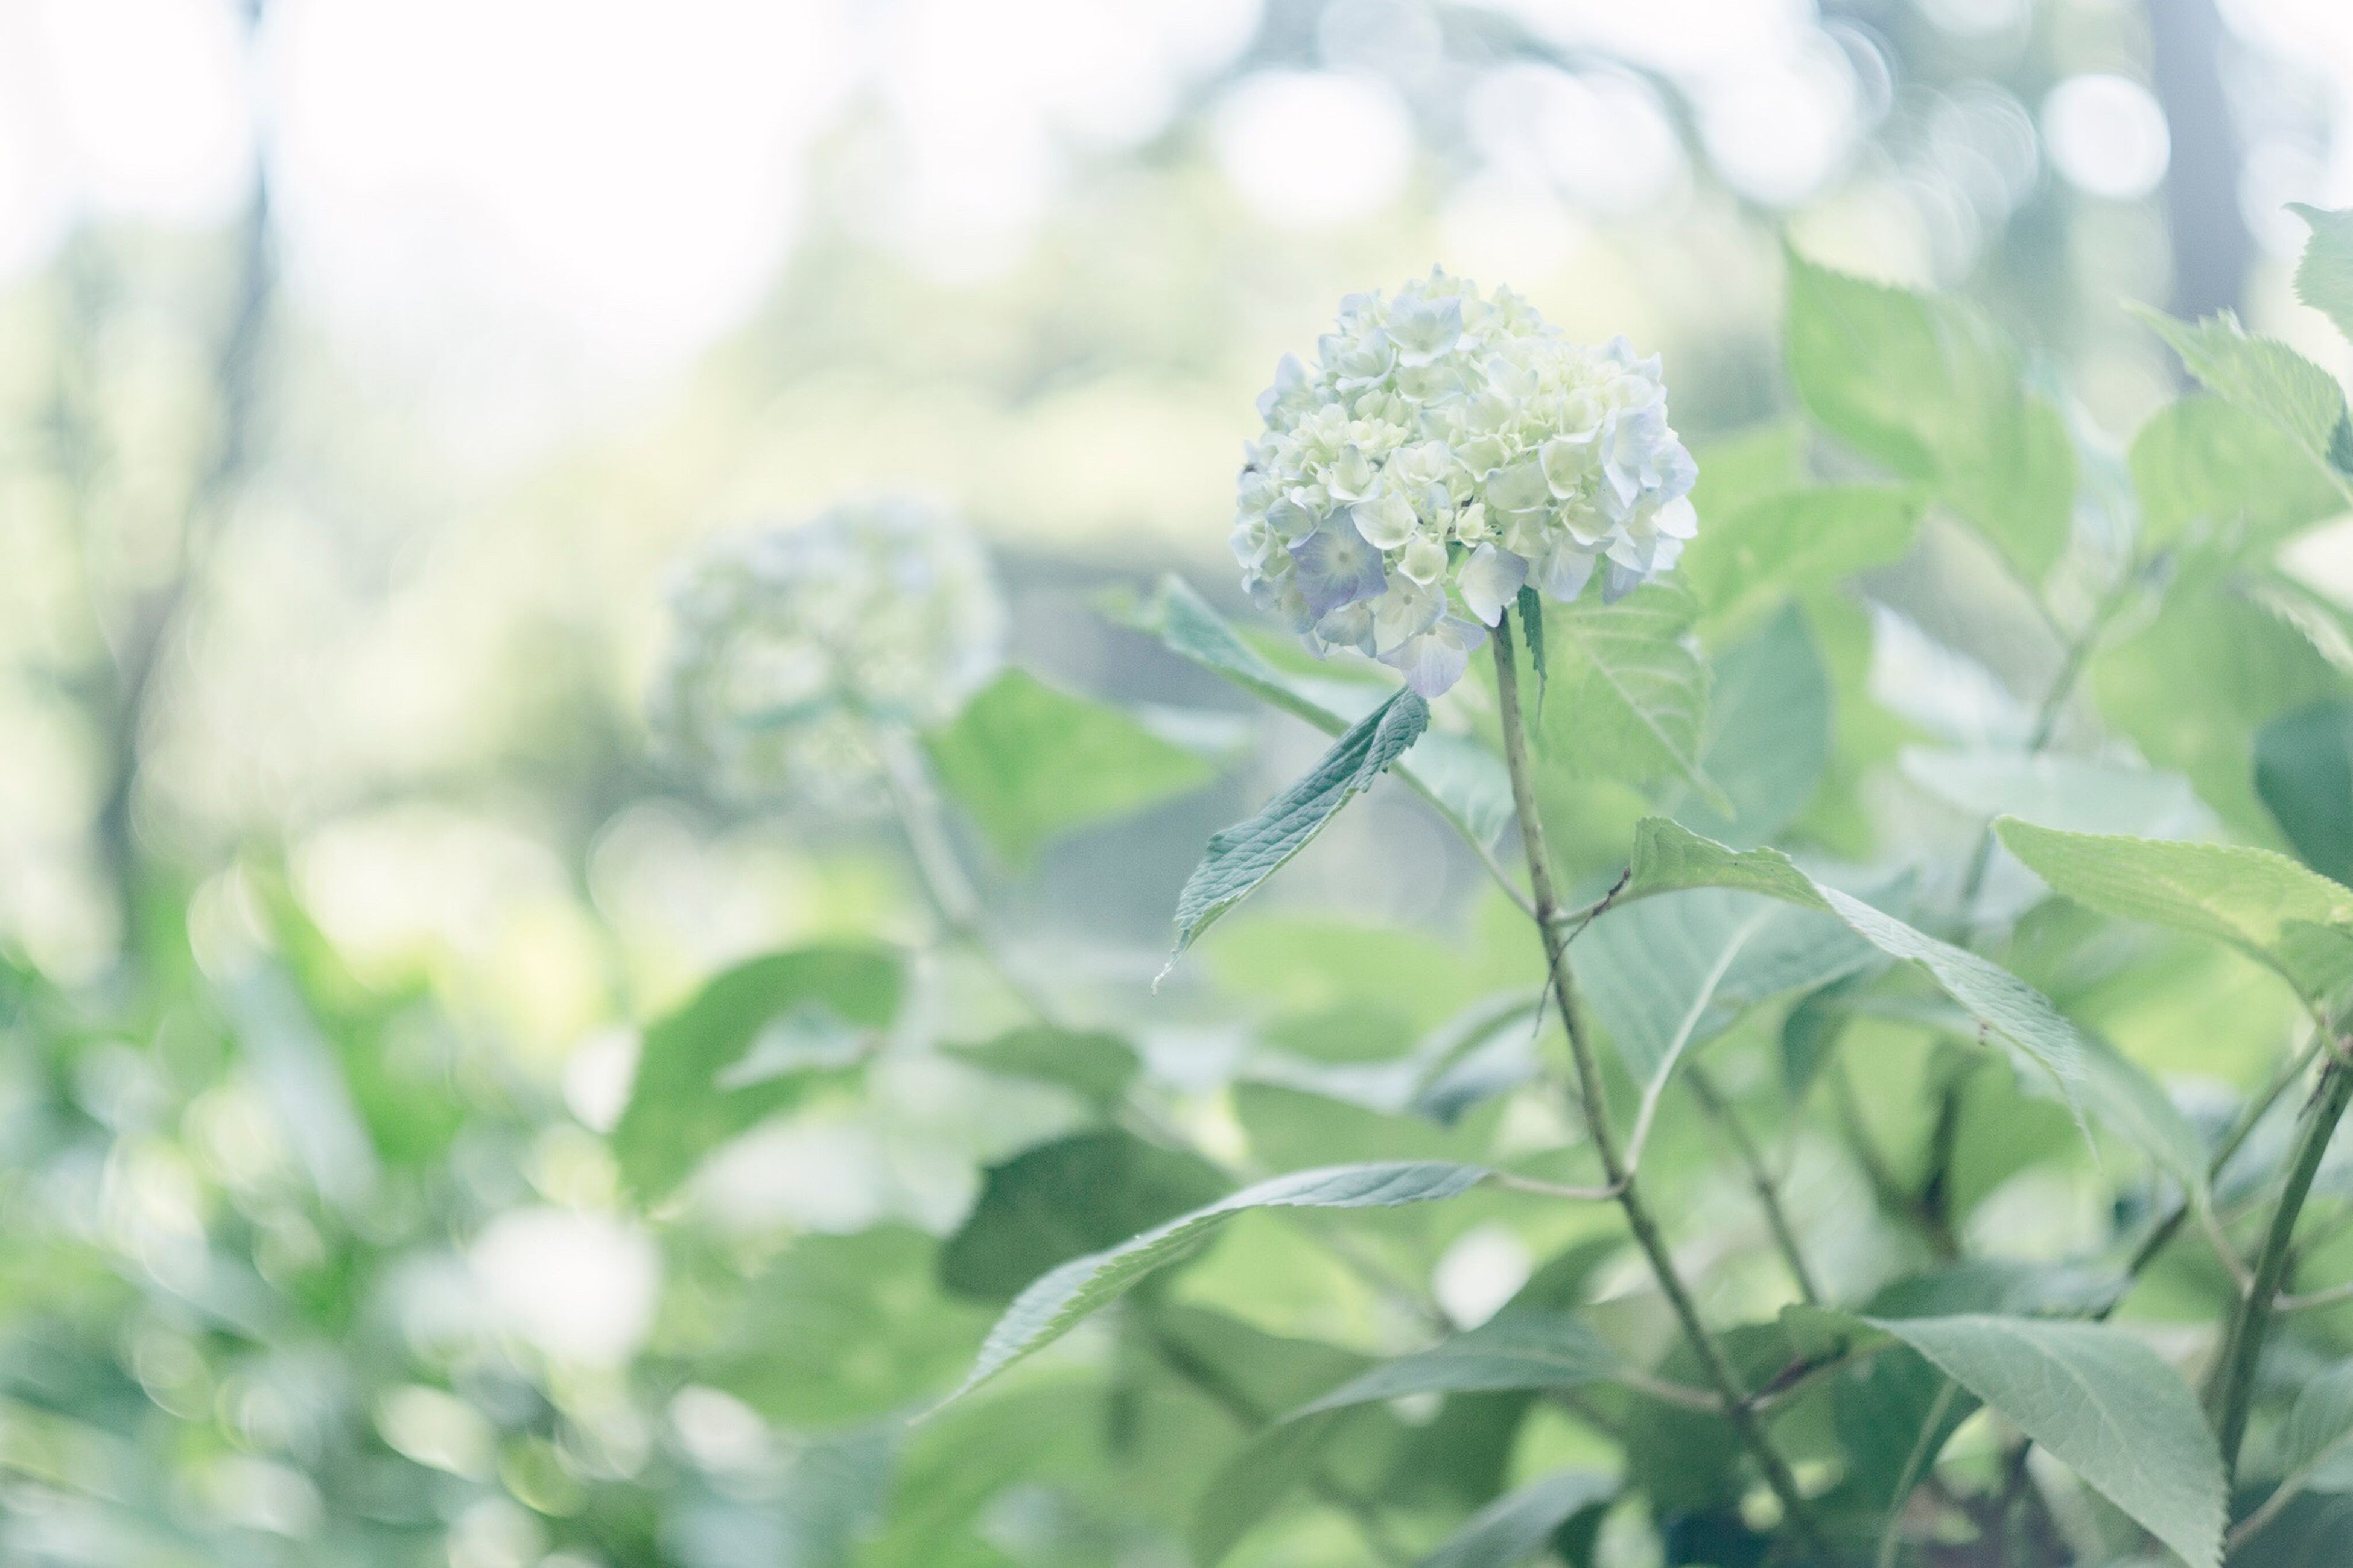 flower, nature, beauty in nature, plant, growth, no people, fragility, day, focus on foreground, petal, close-up, outdoors, leaf, green color, freshness, blooming, flower head, animal themes